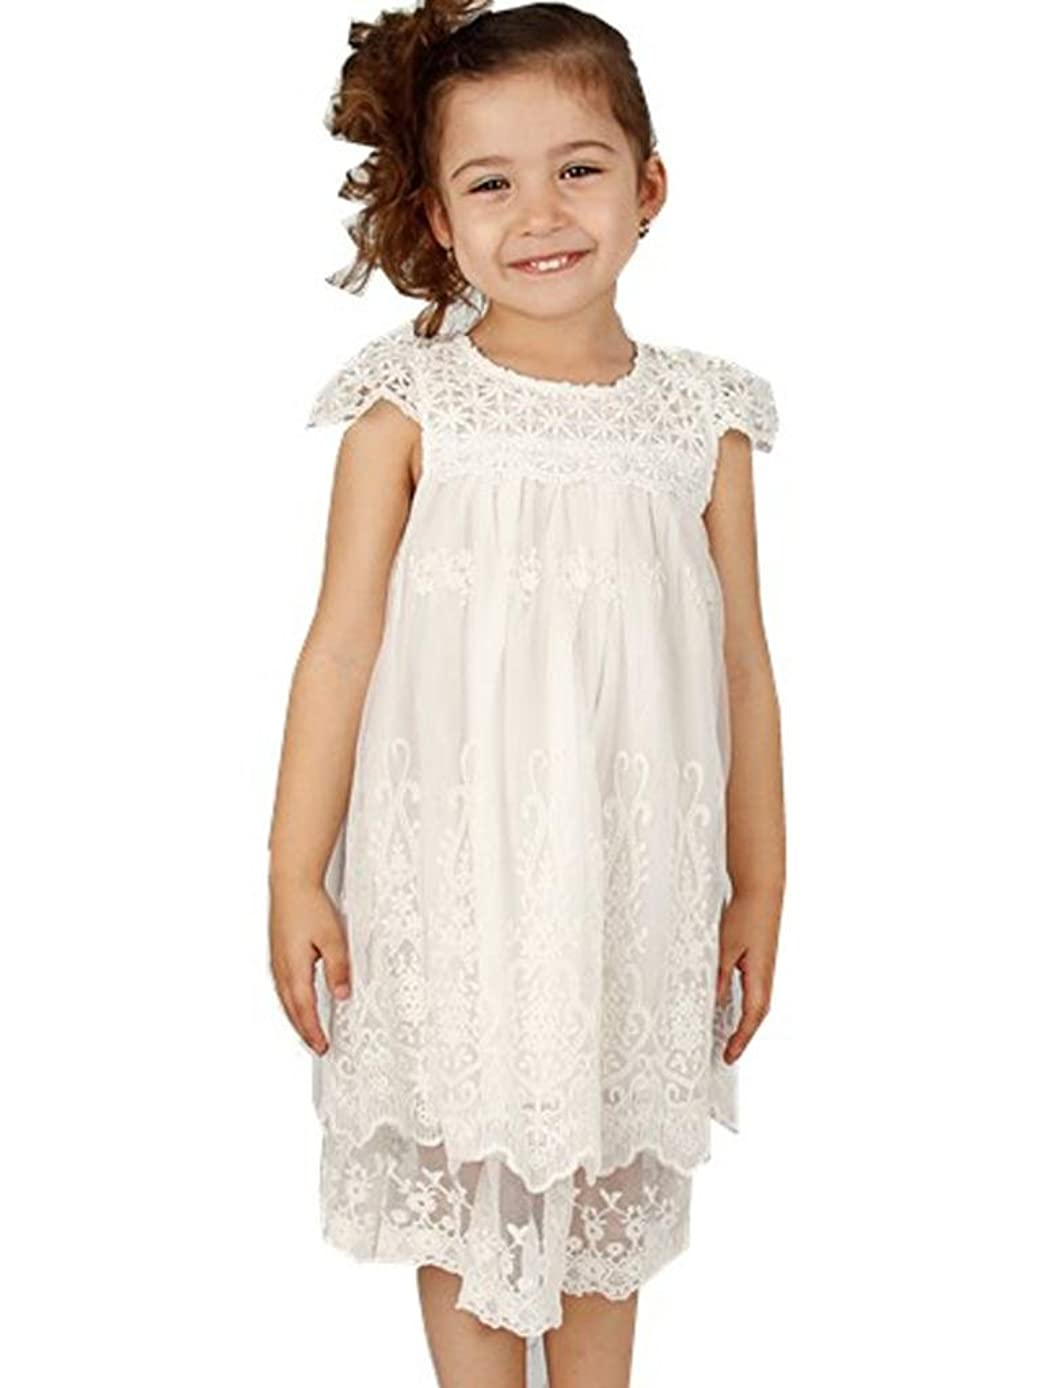 Bow Dream Off White Ivory White Vintage Rustic Baptism Lace Flower Girl's Dress